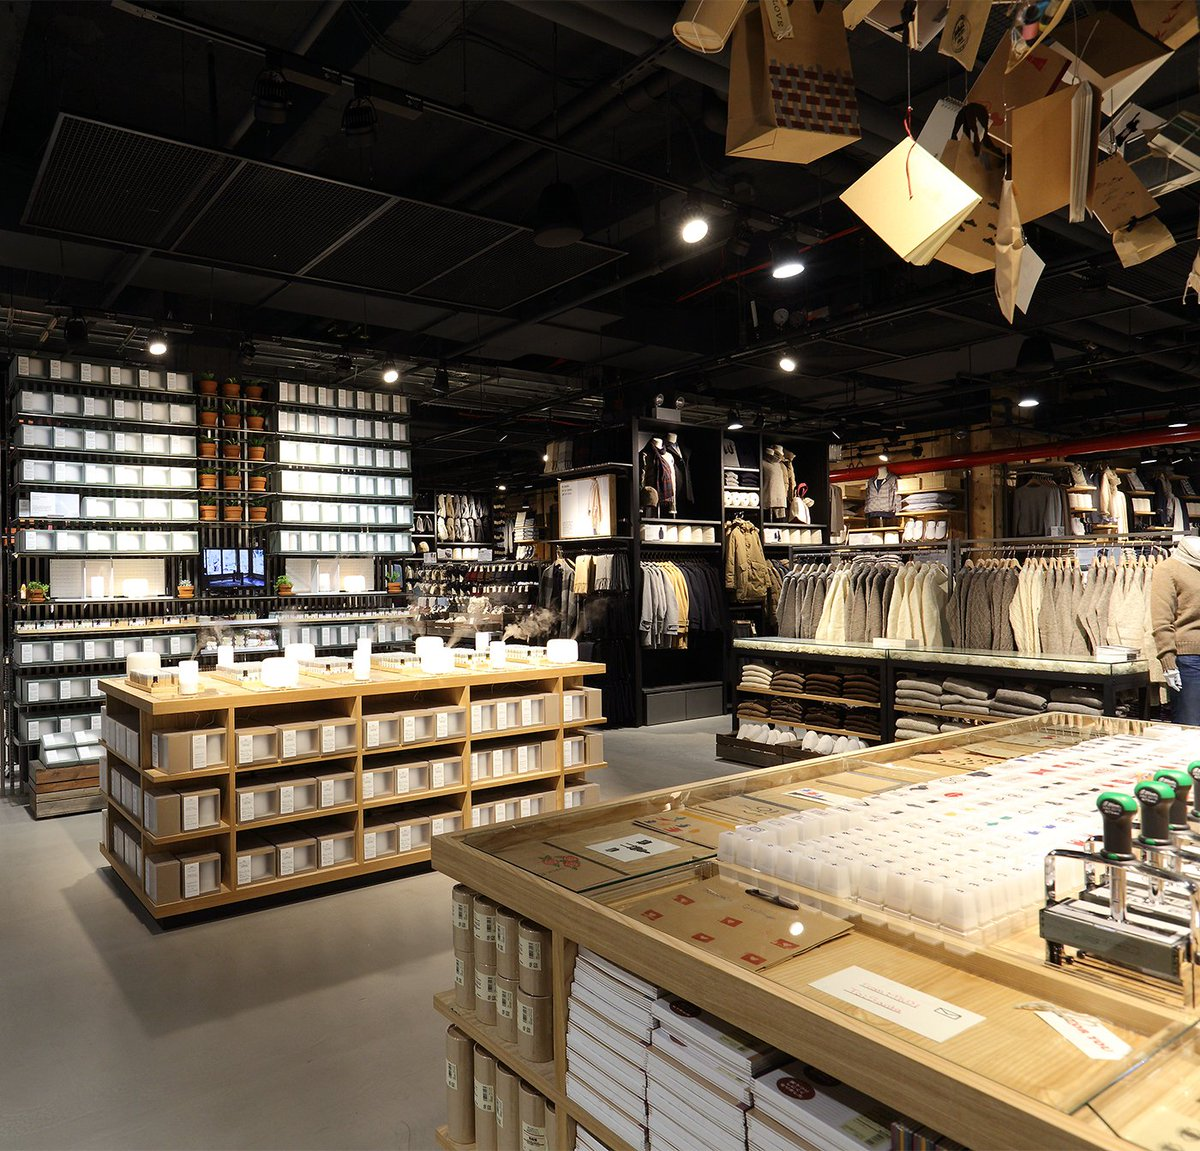 MUJI offers a wide variety of good quality items from stationery to household items and apparel.